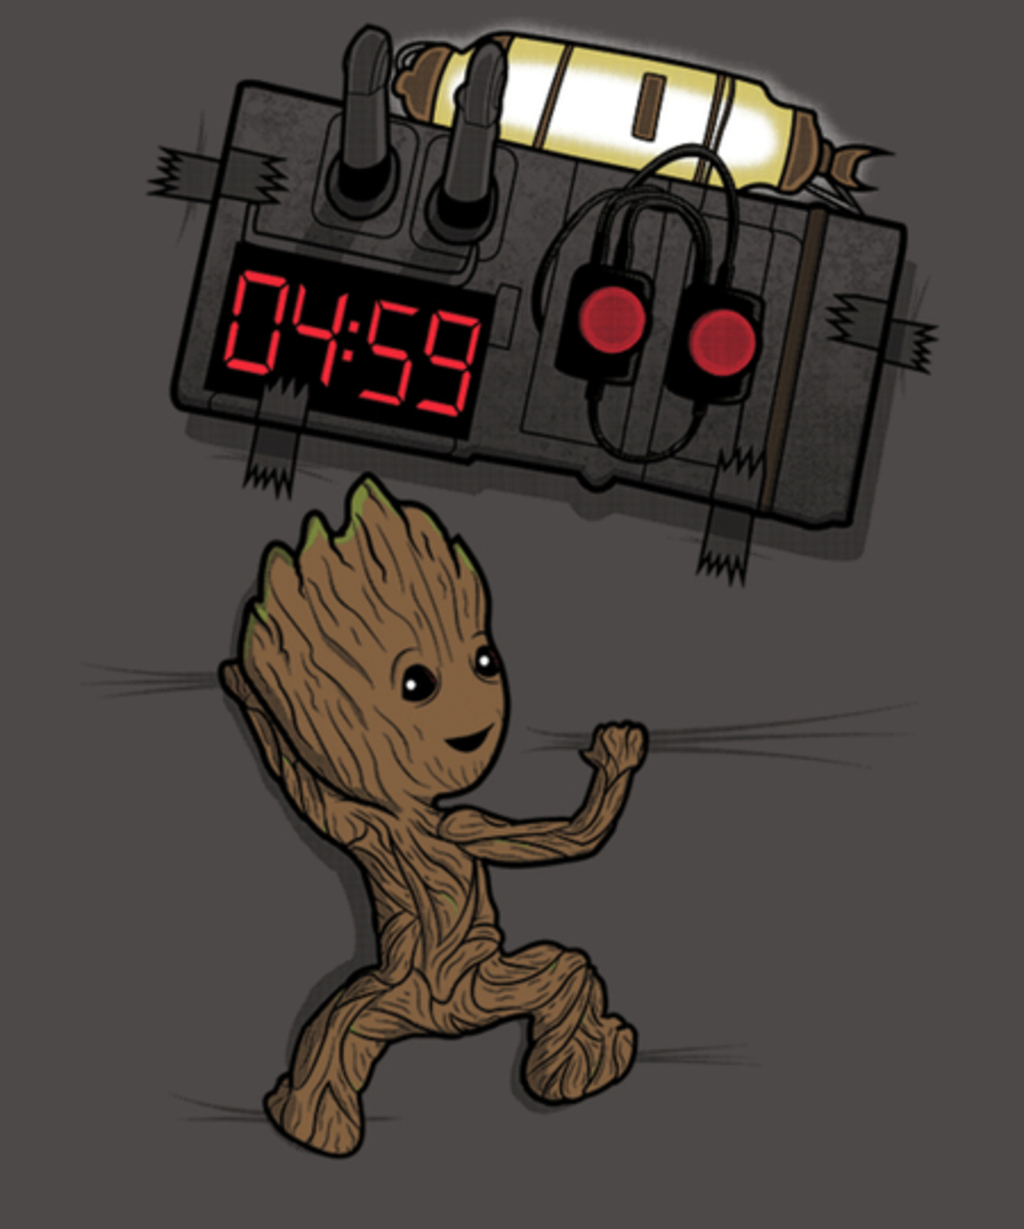 Qwertee: BOMB IN YOUR CHEST!